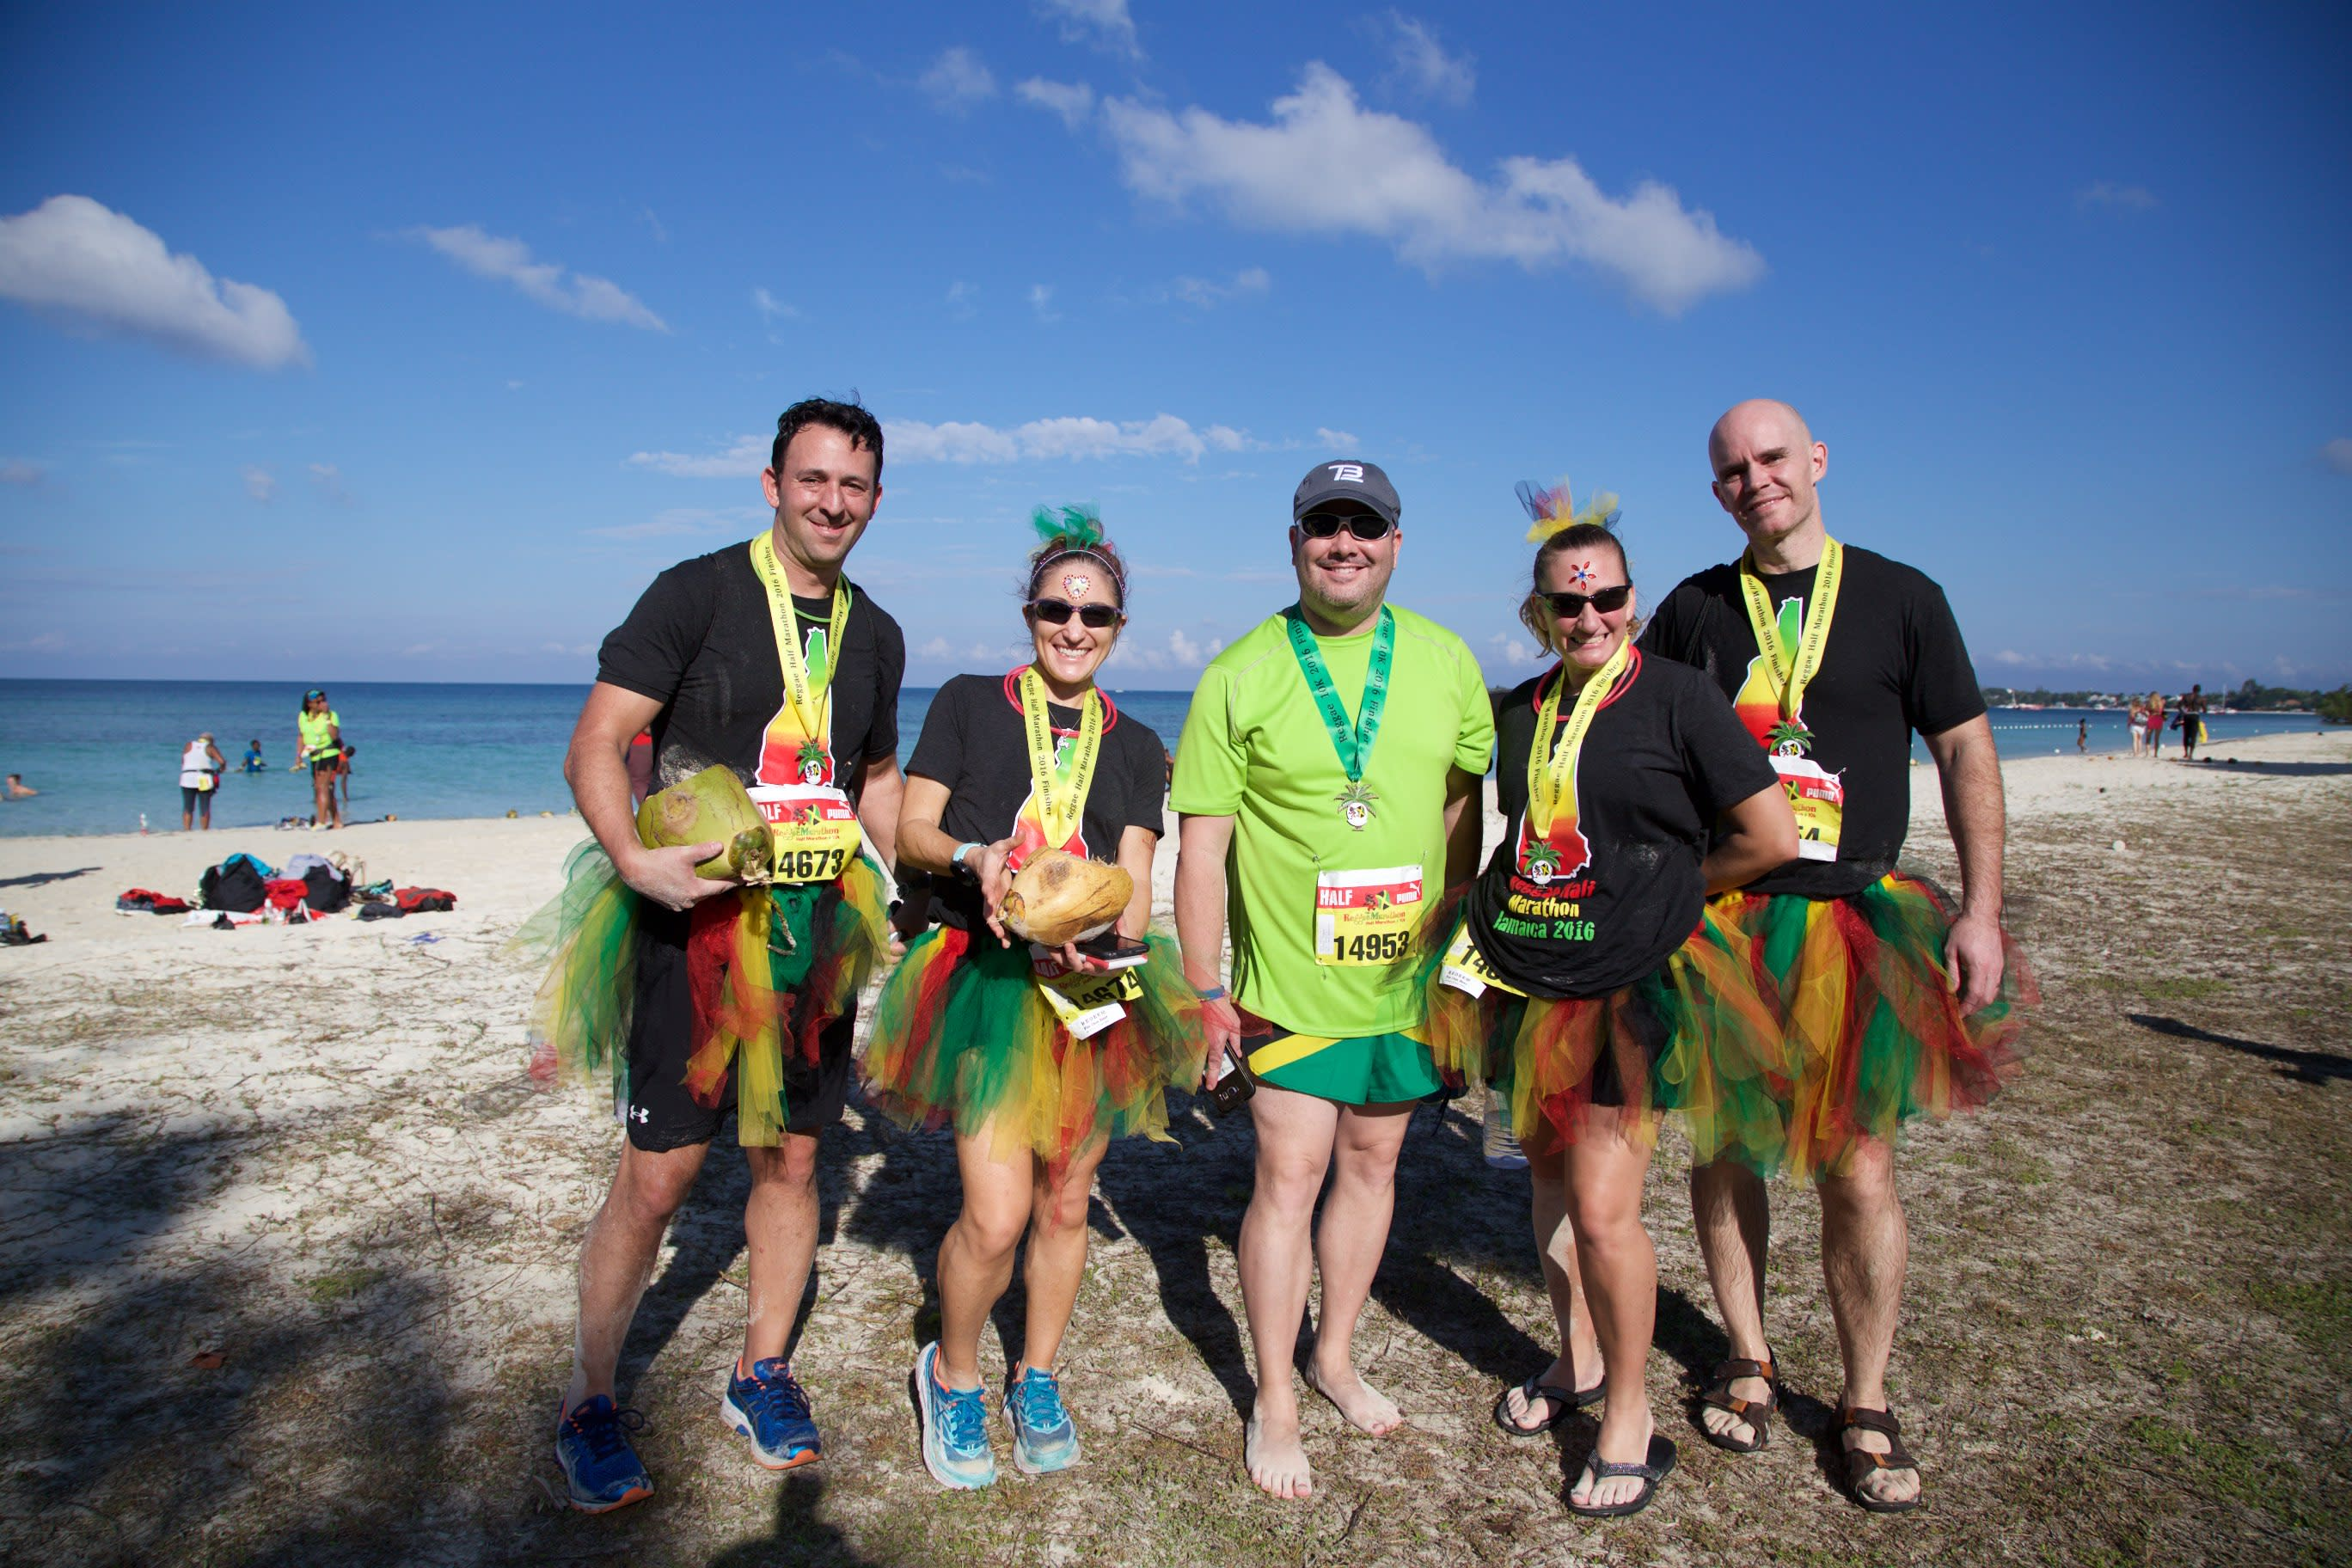 The New Hampshire running group are all smiles on Negril's seven-mile beach after completing the 2016 Reggae Marathon.